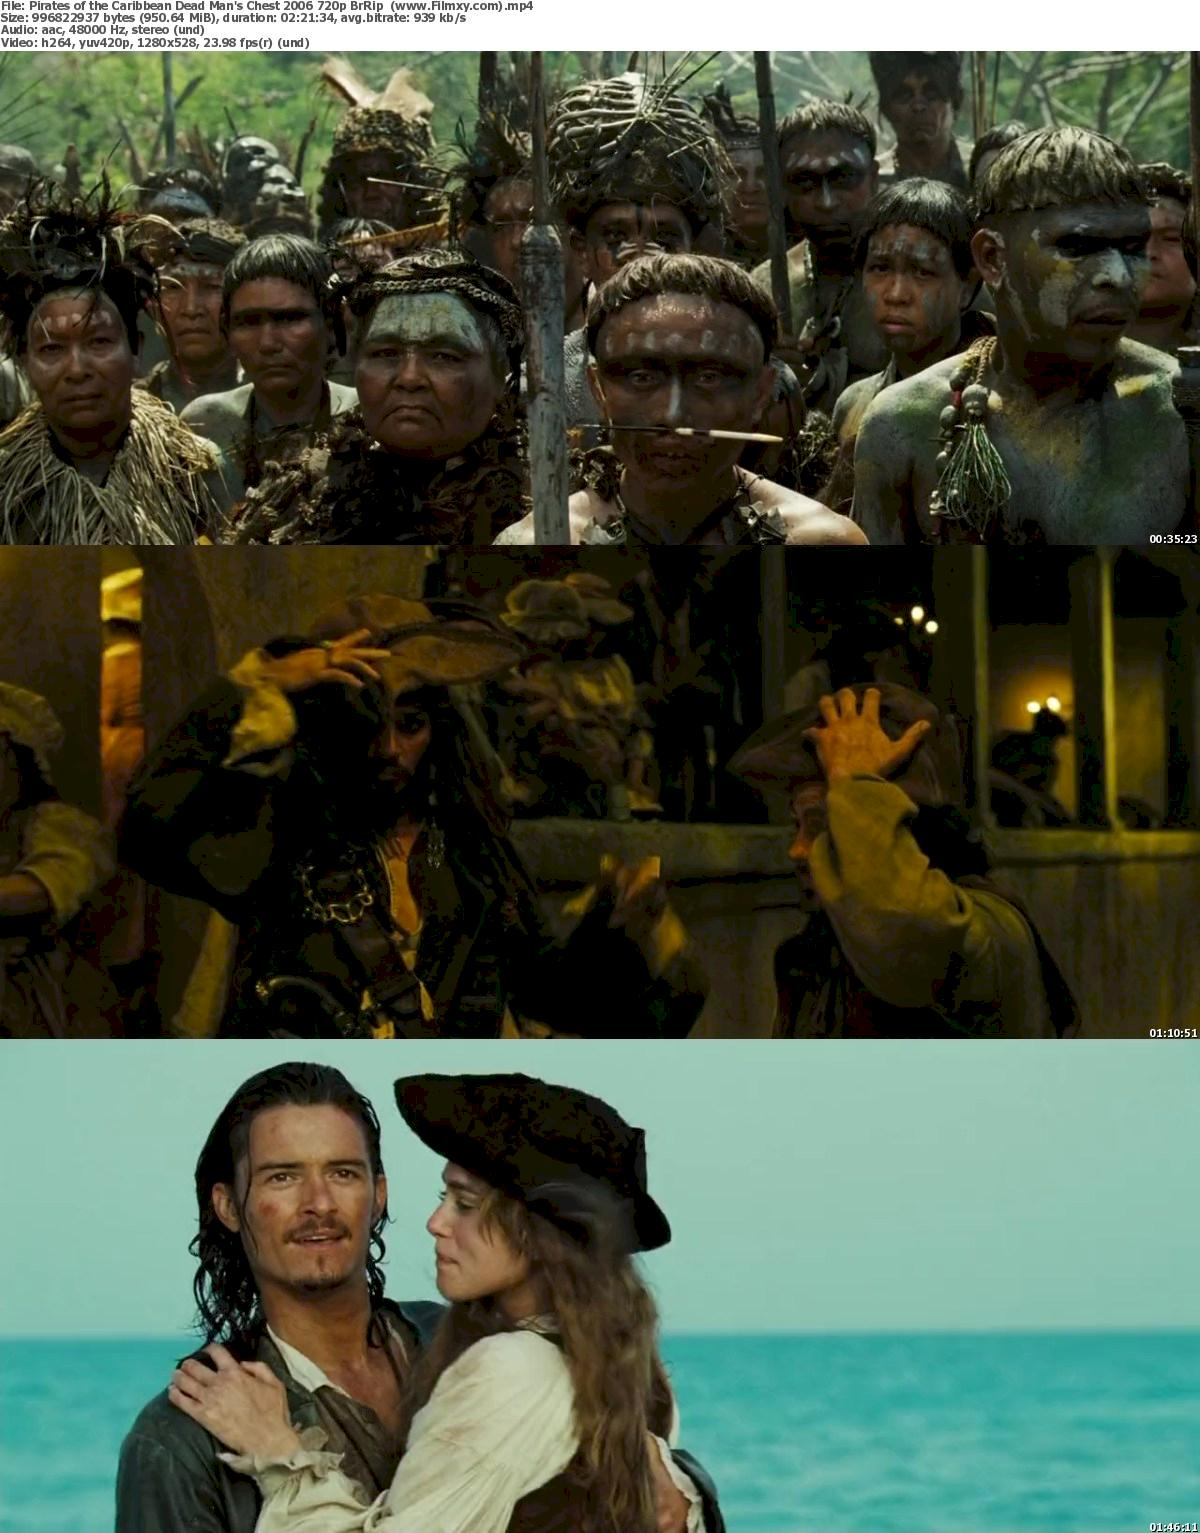 Pirates of the Caribbean Dead Man's Chest (2006) 720p Screenshot